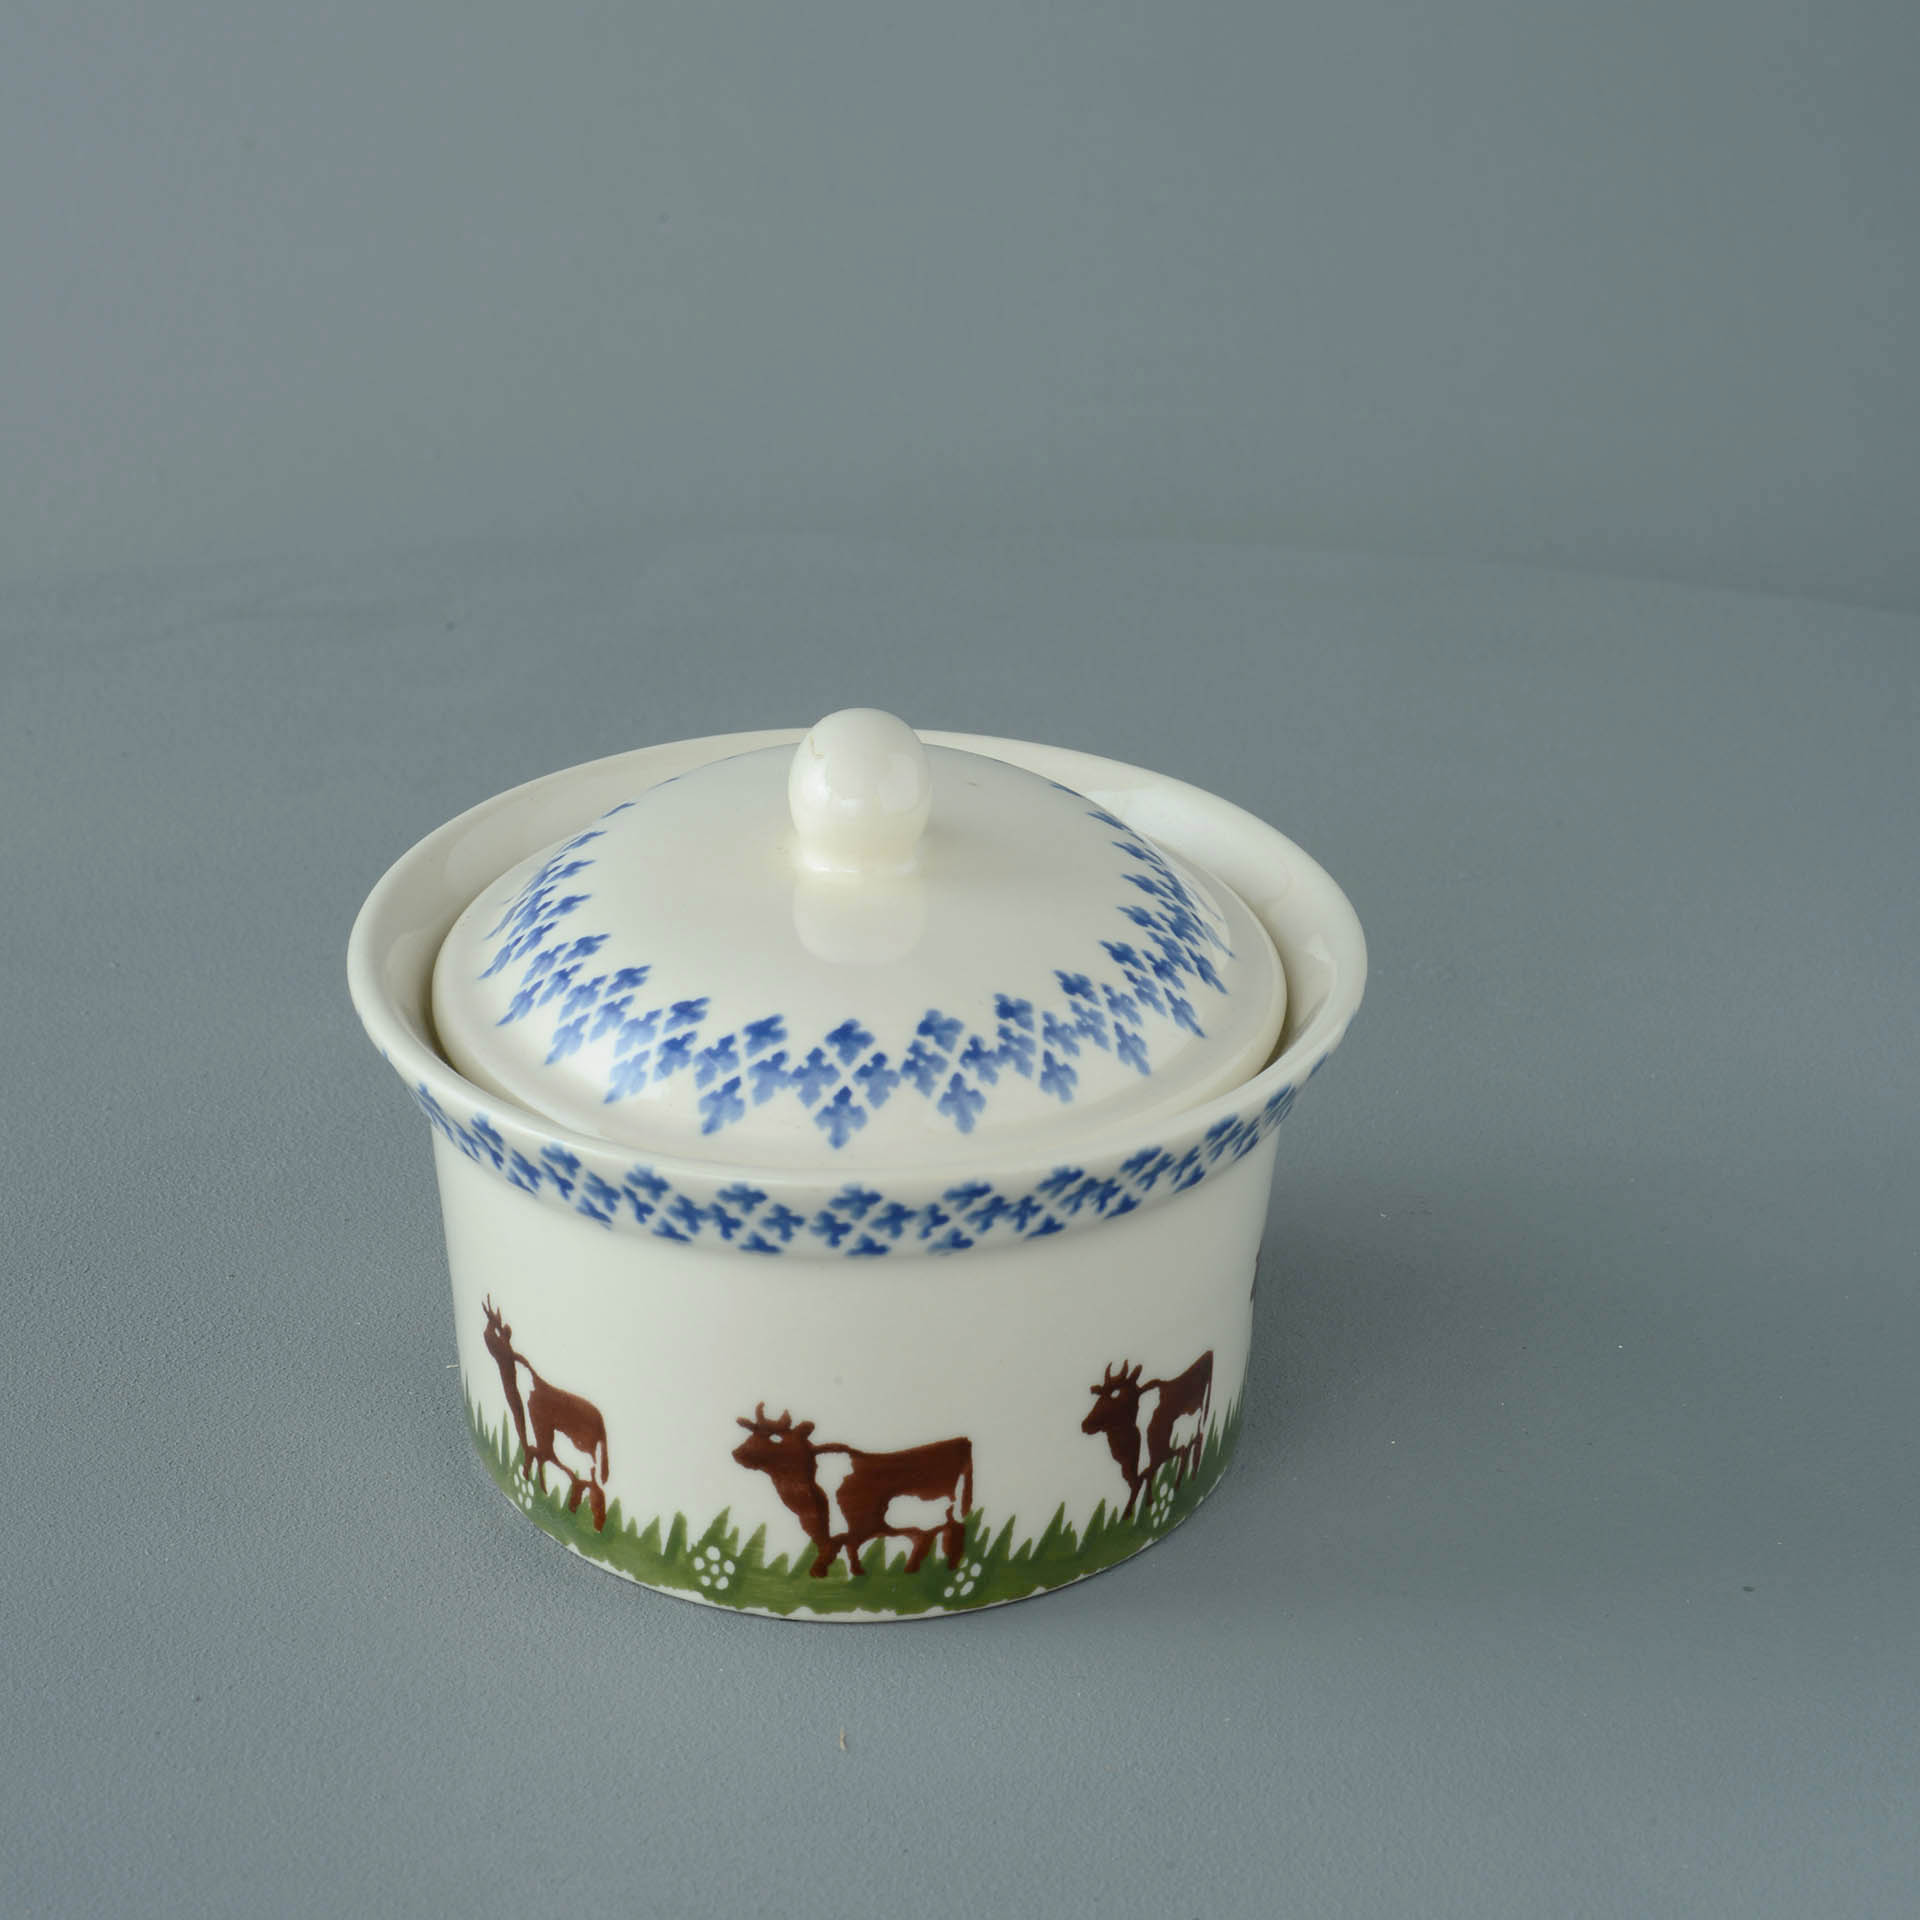 Cows Butter Dish Oval 16.3 x 12 x 8.5cm